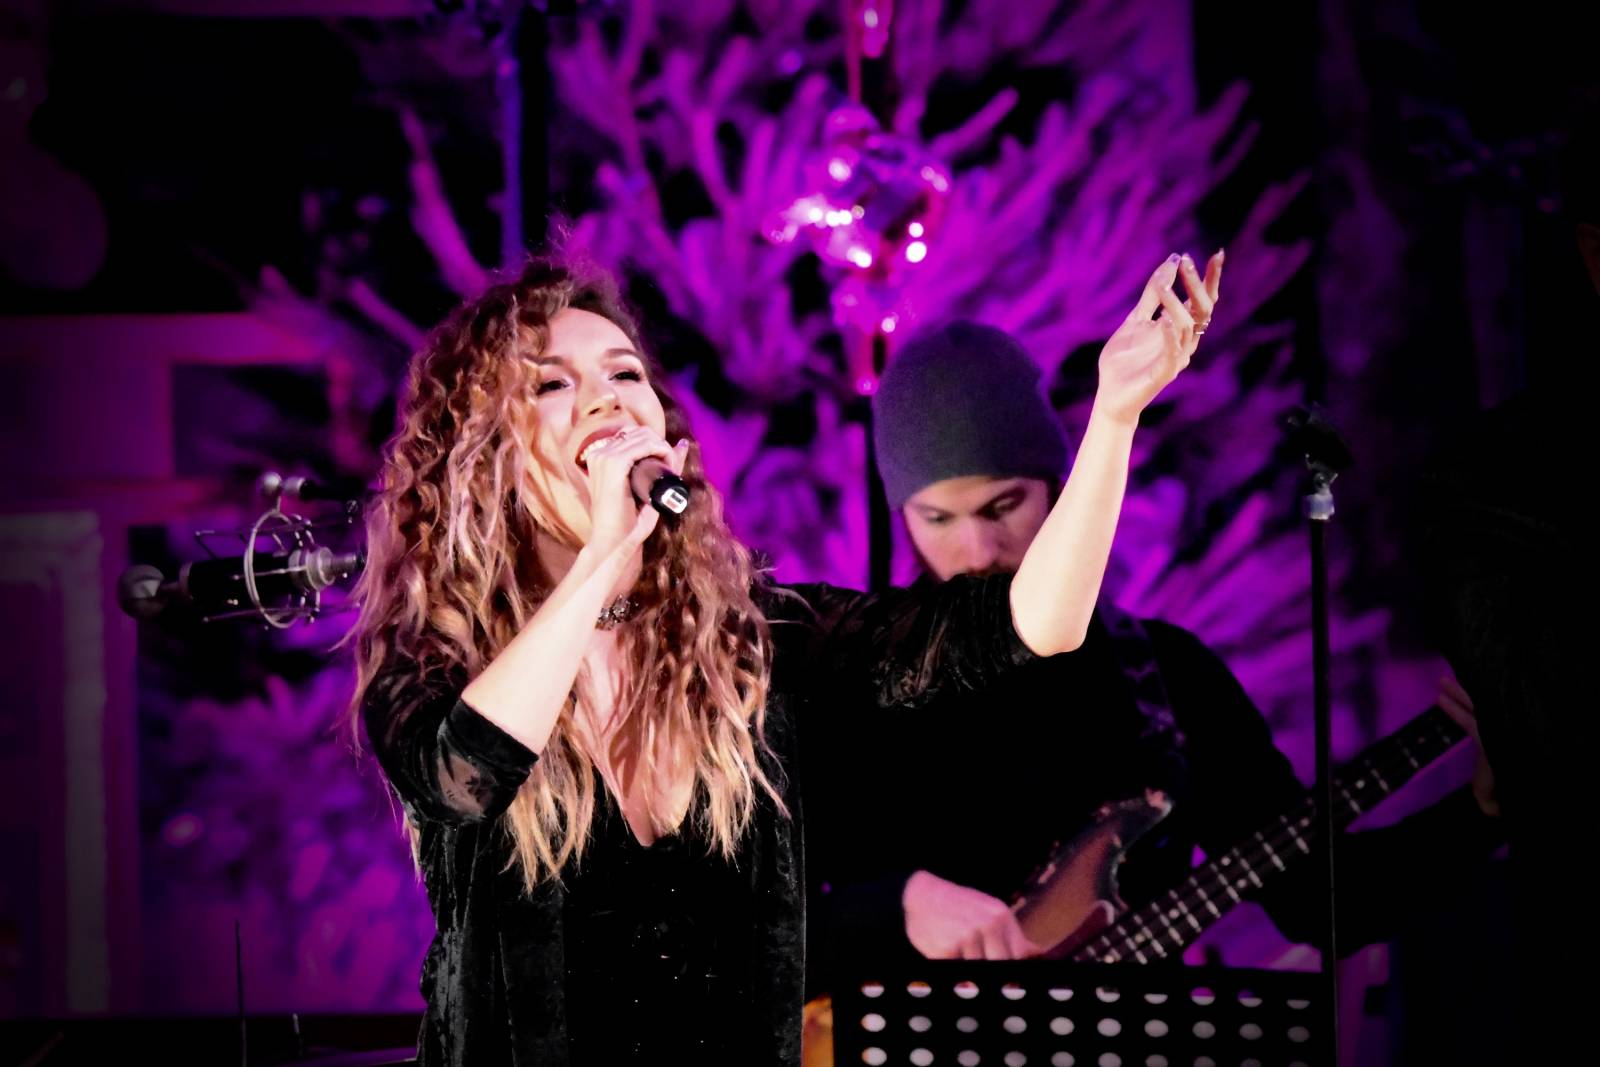 Dunja artiest zangeres livemuziek house of weddings(2)